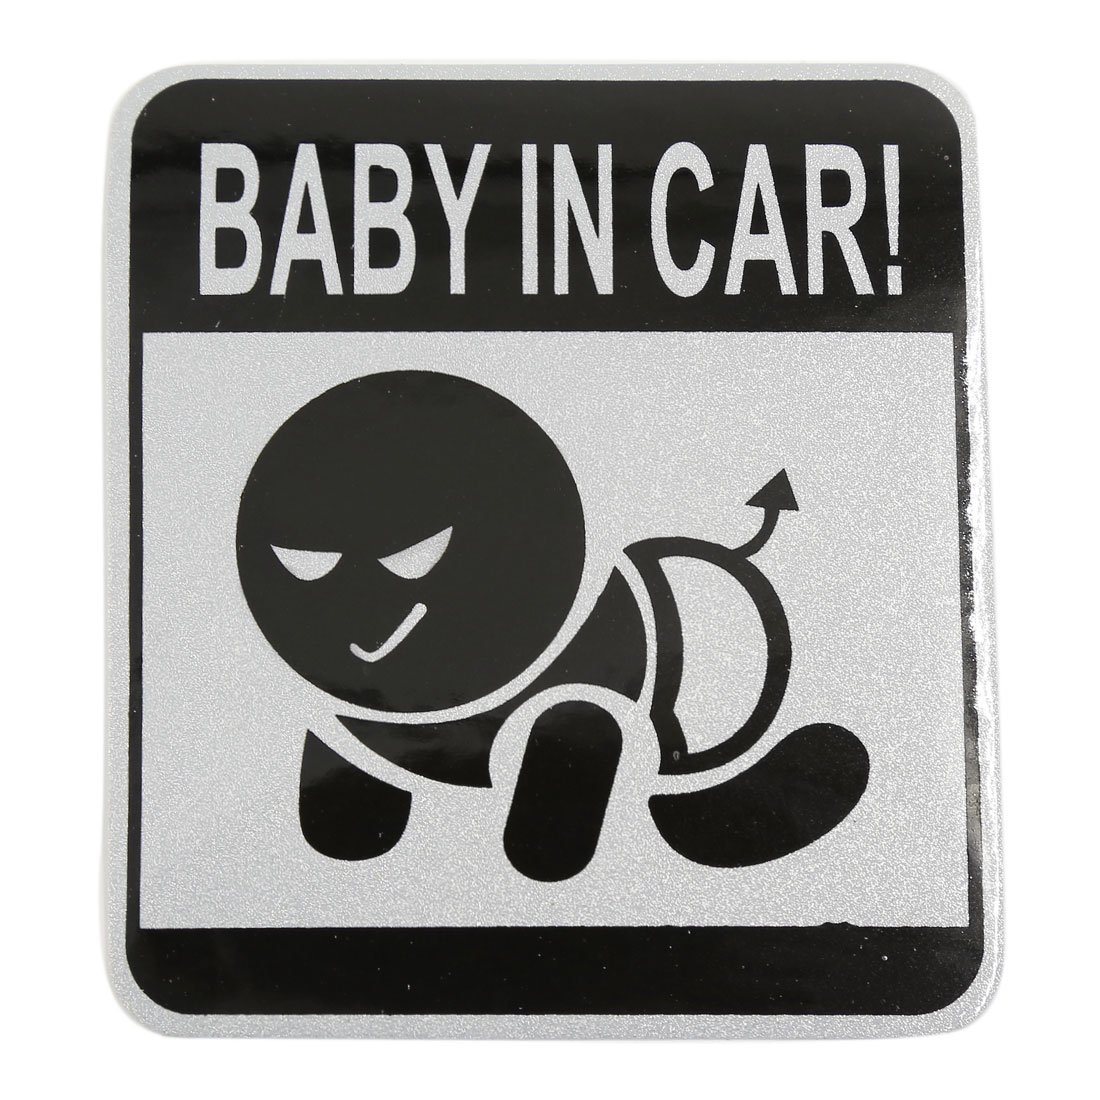 BABY IN CAR Printed Self-adhesive Auto Reflective Sticker Decal 11cm x 9.8cm